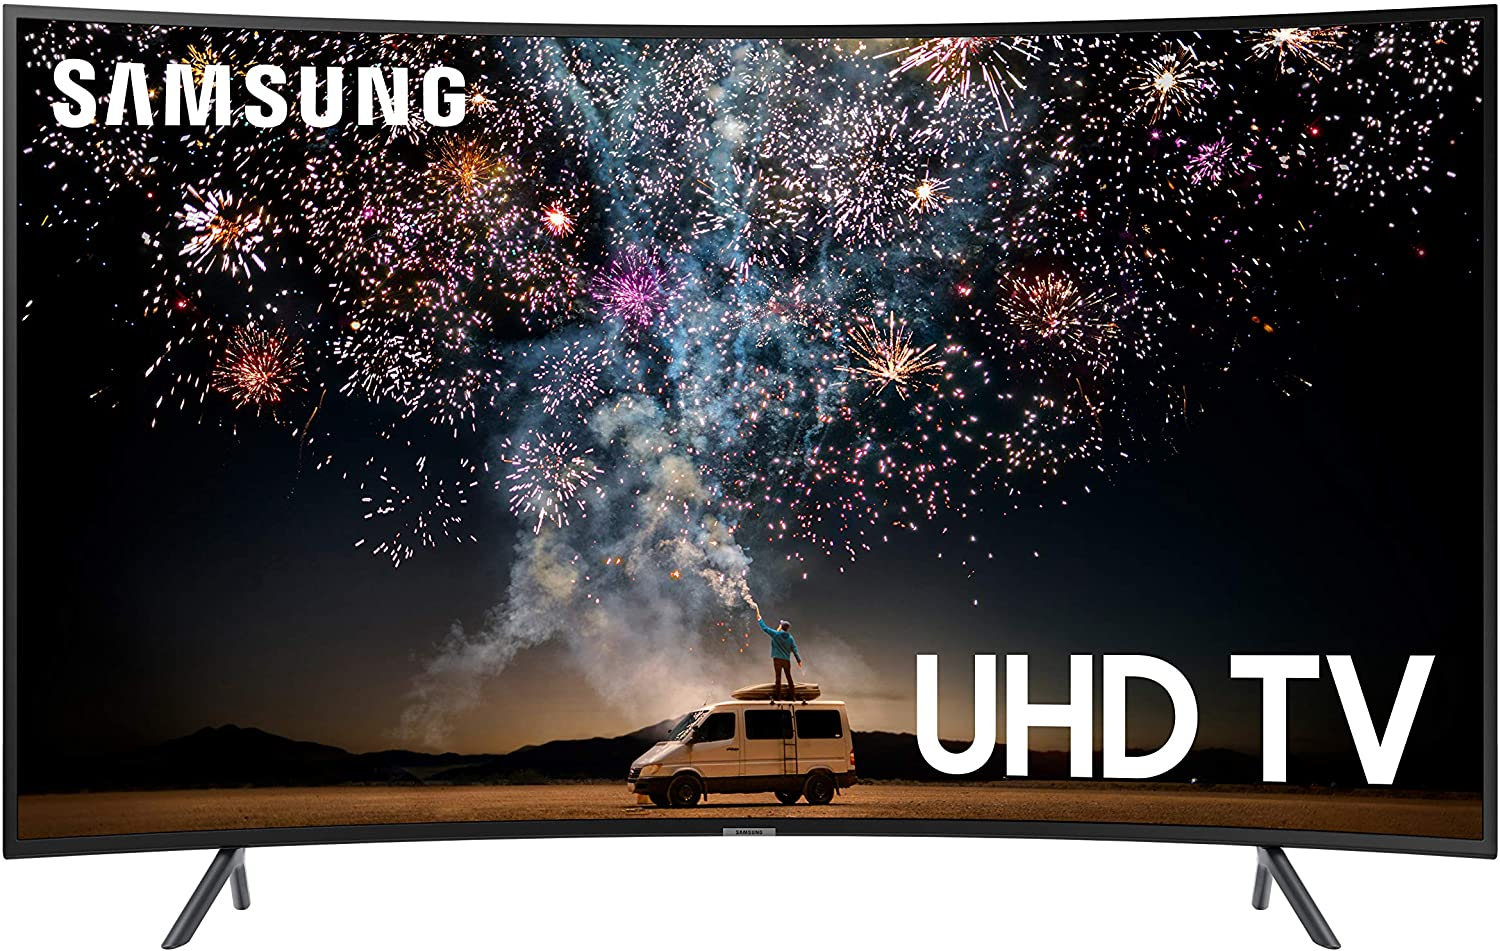 Curved 55-inch Samsung RU7300 4K UHD TV is $200 cheaper for the rest of June 2020